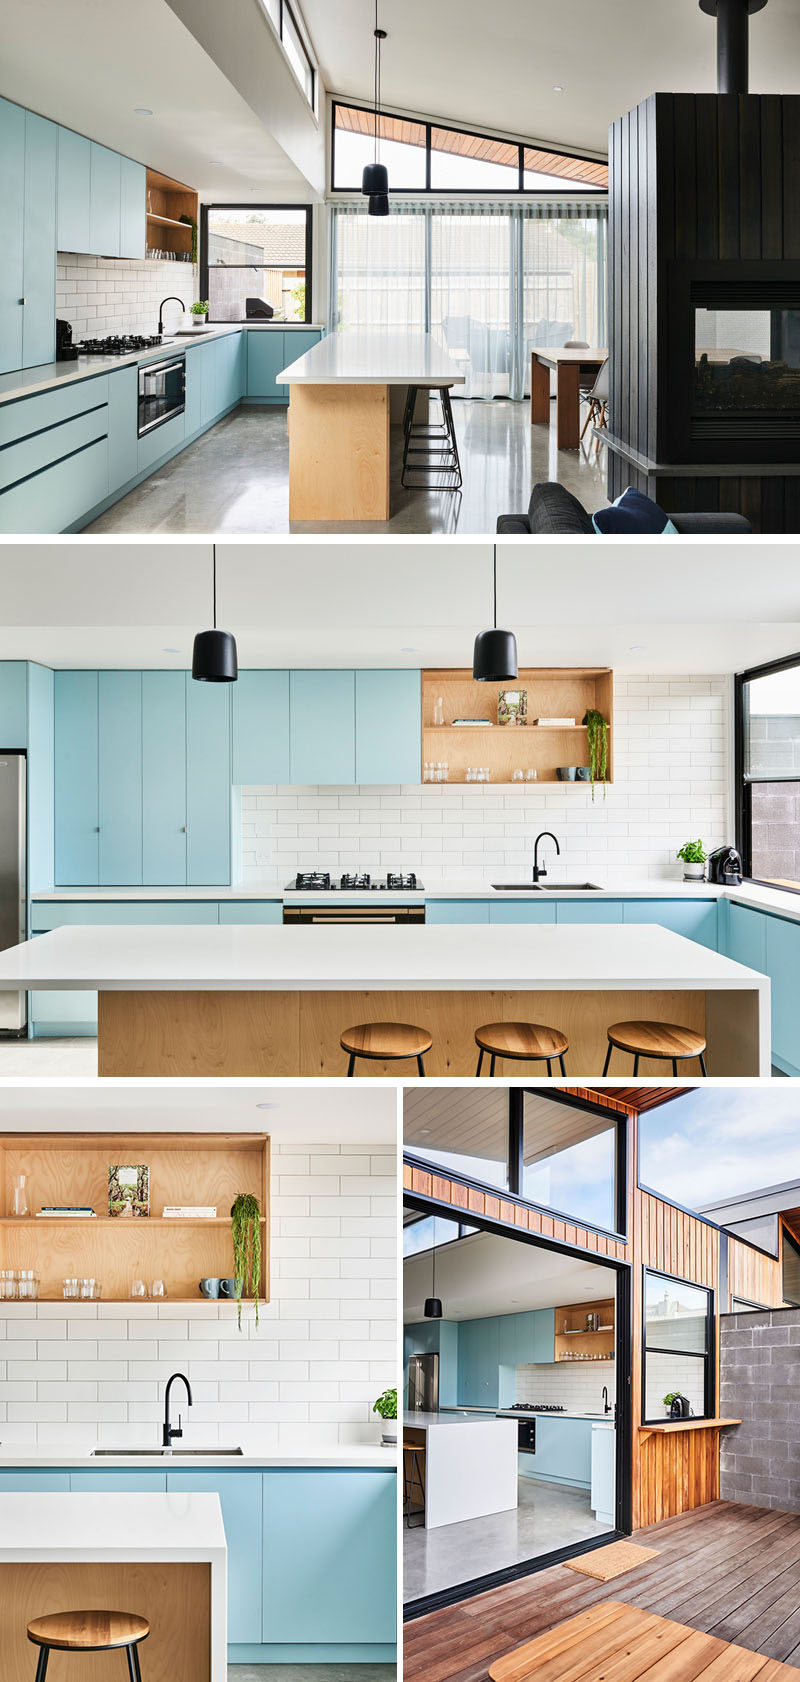 In this modern kitchen, matte light blue cabinets are paired with a white tile backsplash, plywood open shelves and island, and light Caesarstone countertops. #KitchenDesign #ModernKitchen #BlueKitchen